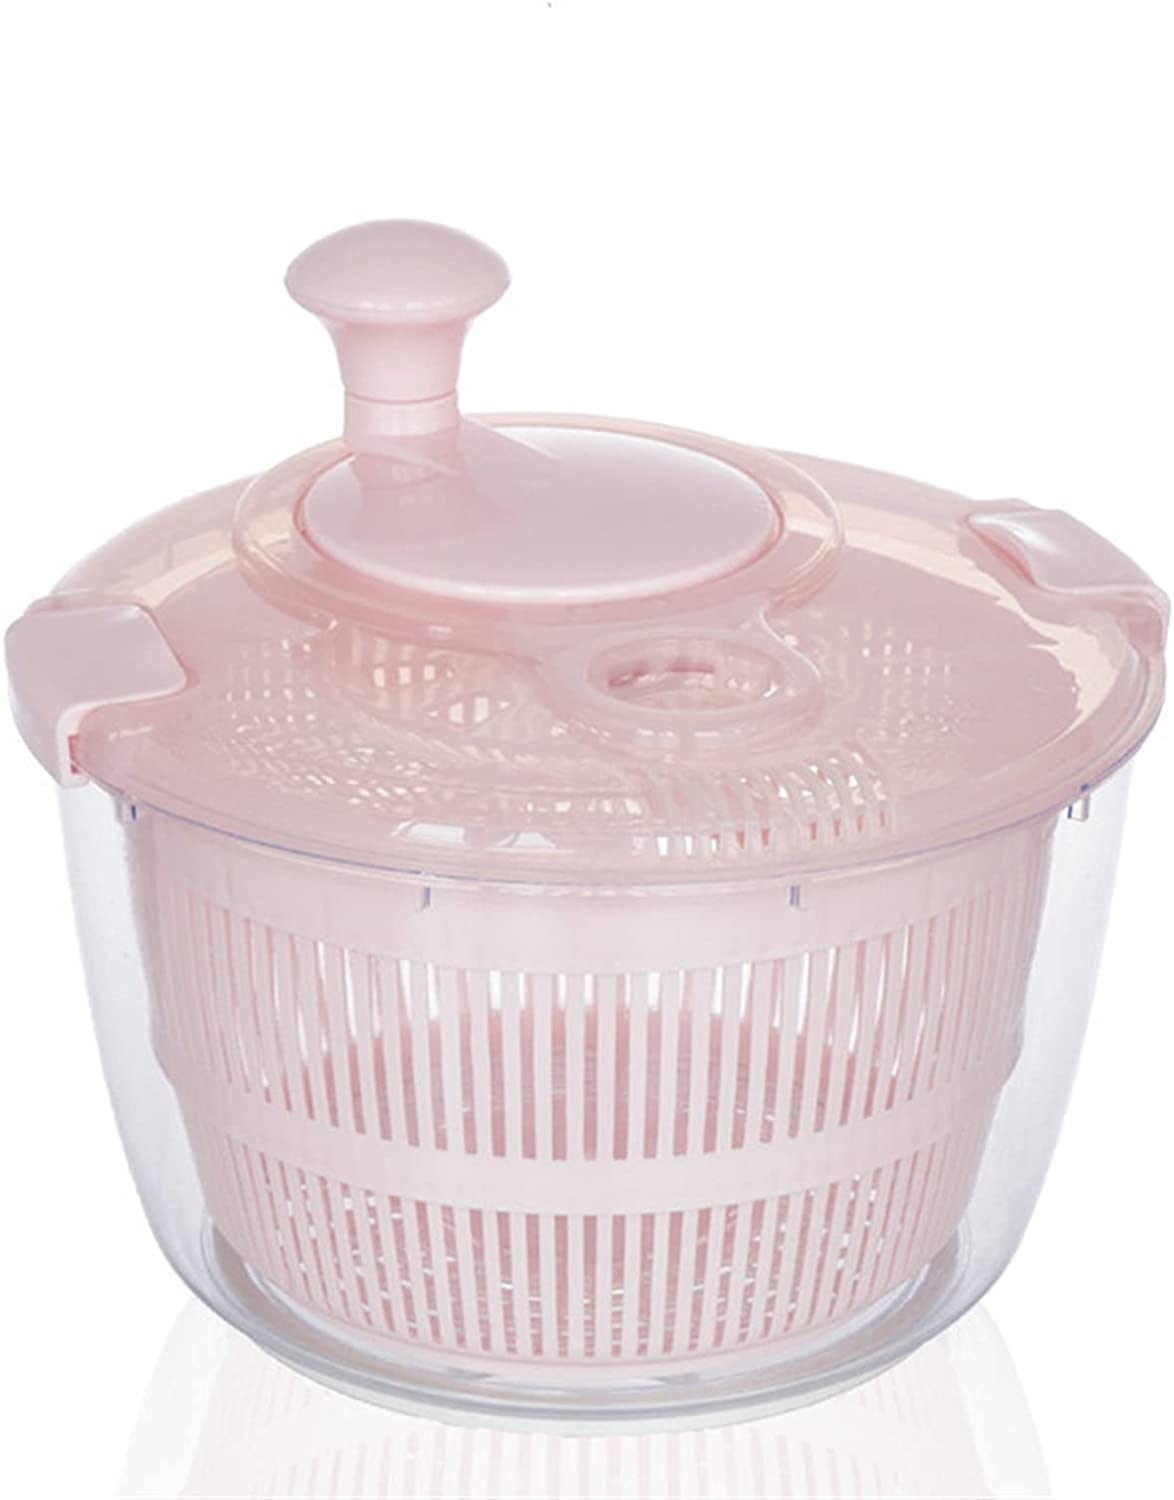 Ultra-Cheap Deals Salad Spinner Vegetable dryer vegetable sala and cleaner fruit Our shop OFFers the best service